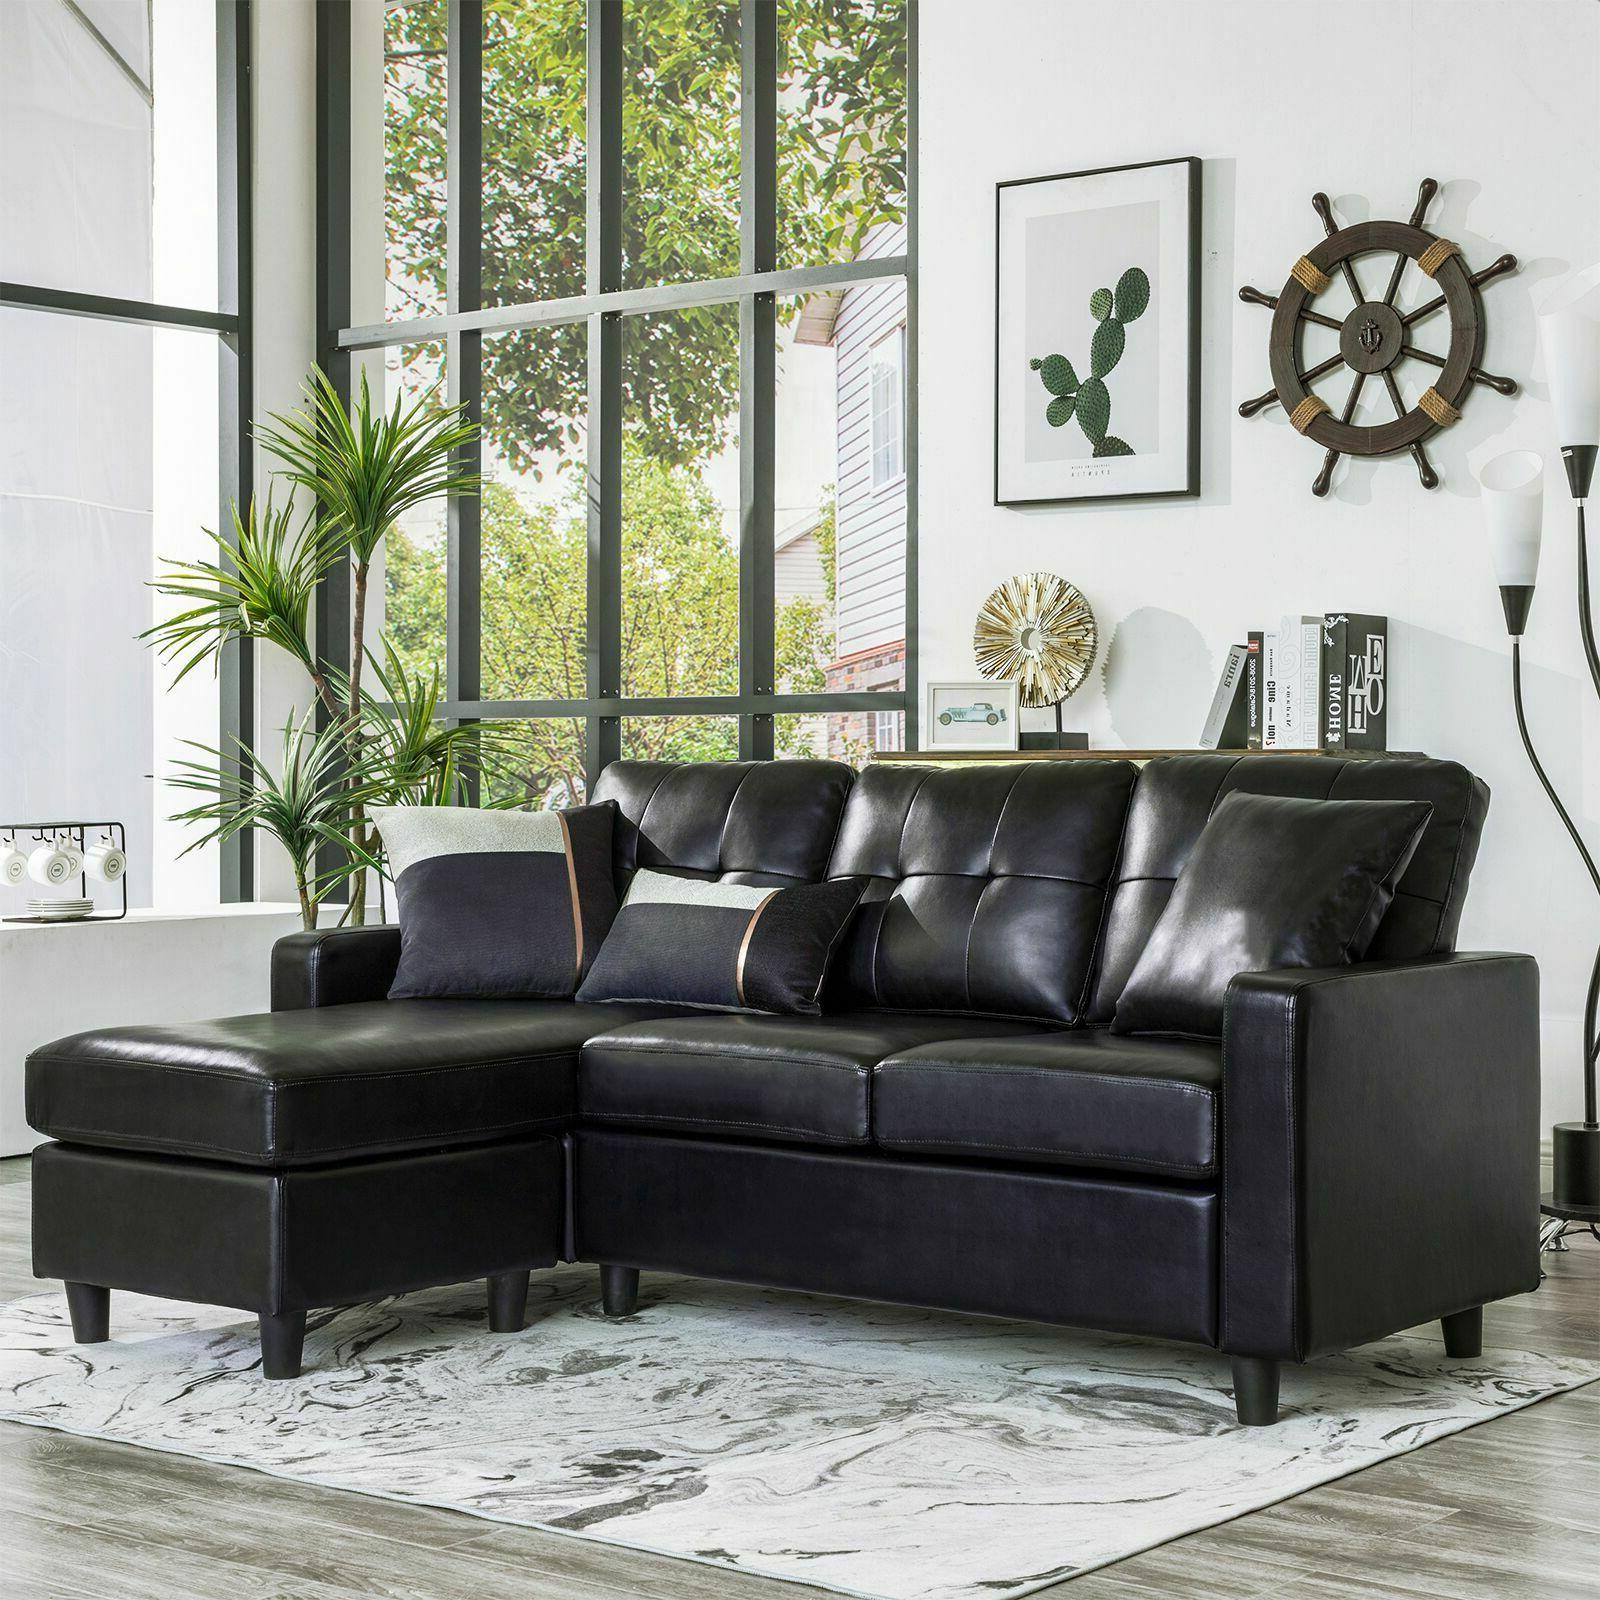 black faux leather sectional sofa l shaped